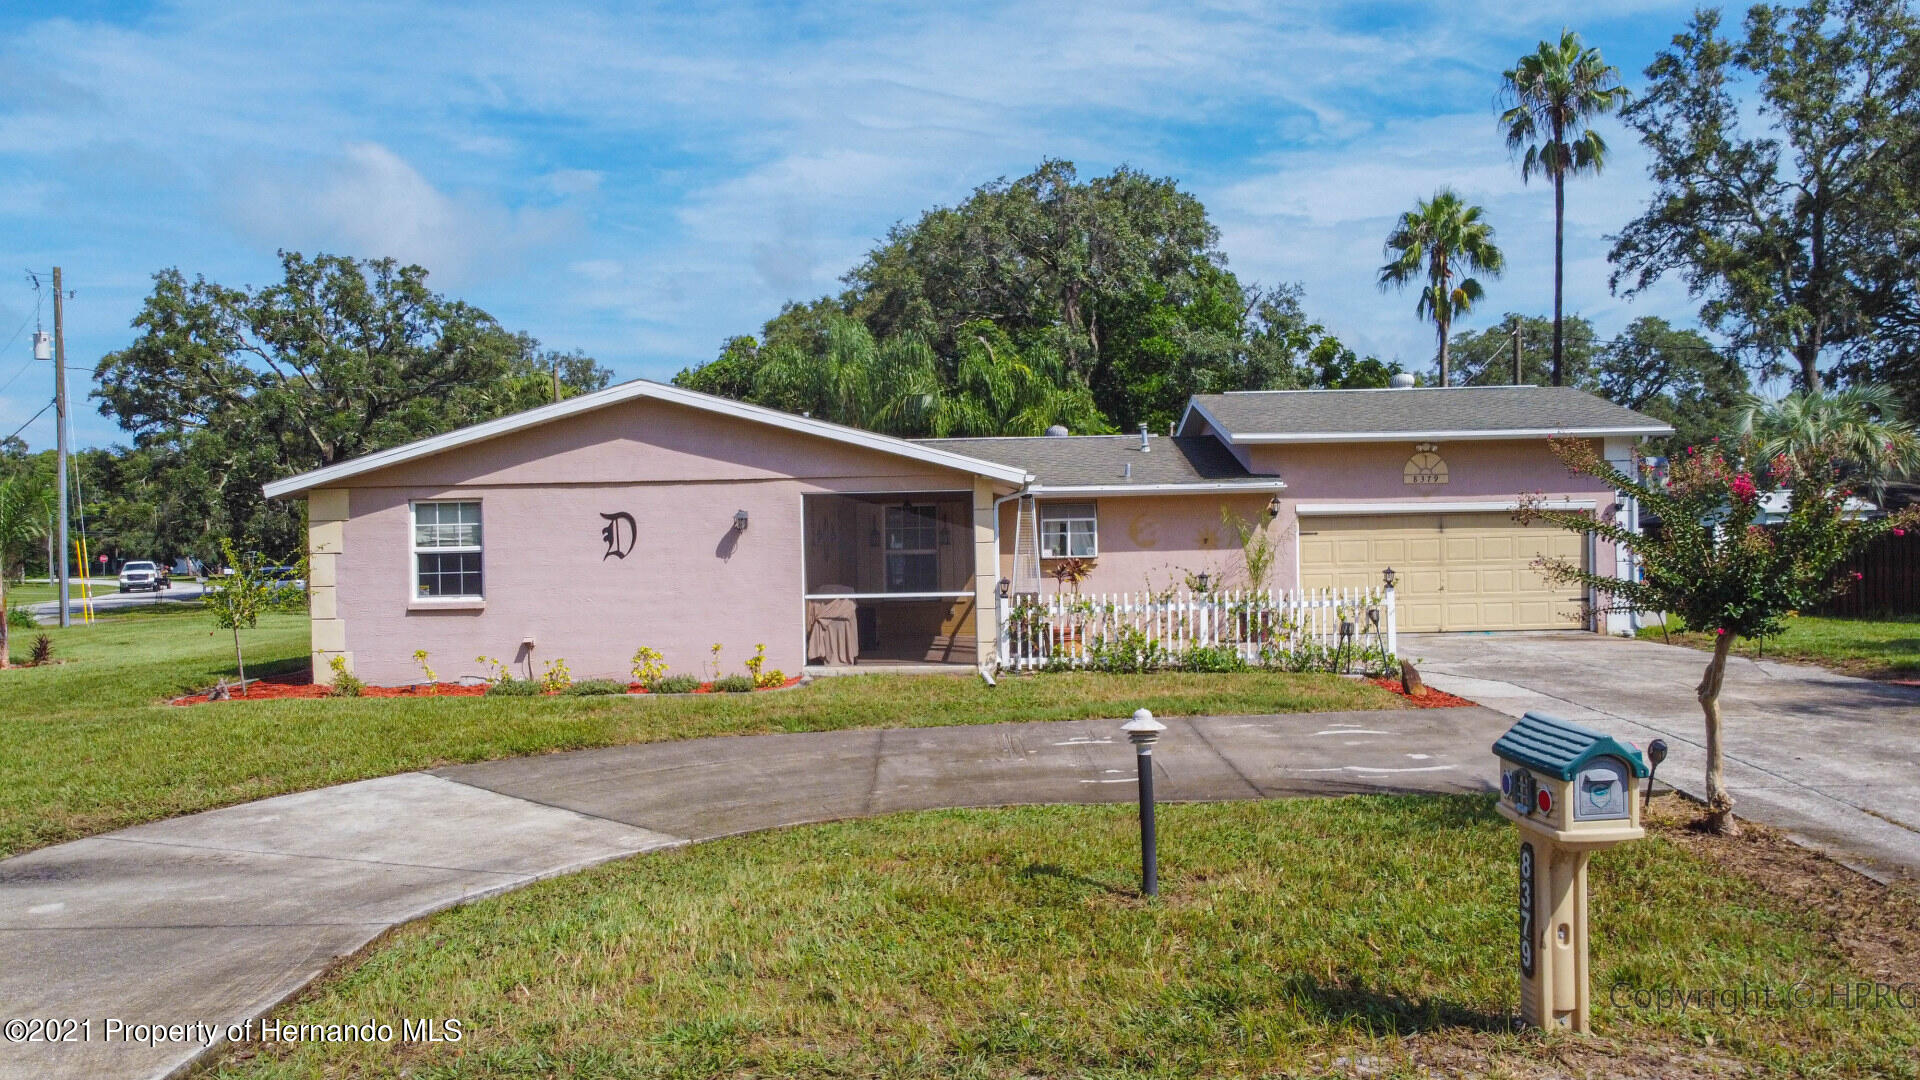 Details for 8379 Peoria Street, Spring Hill, FL 34608